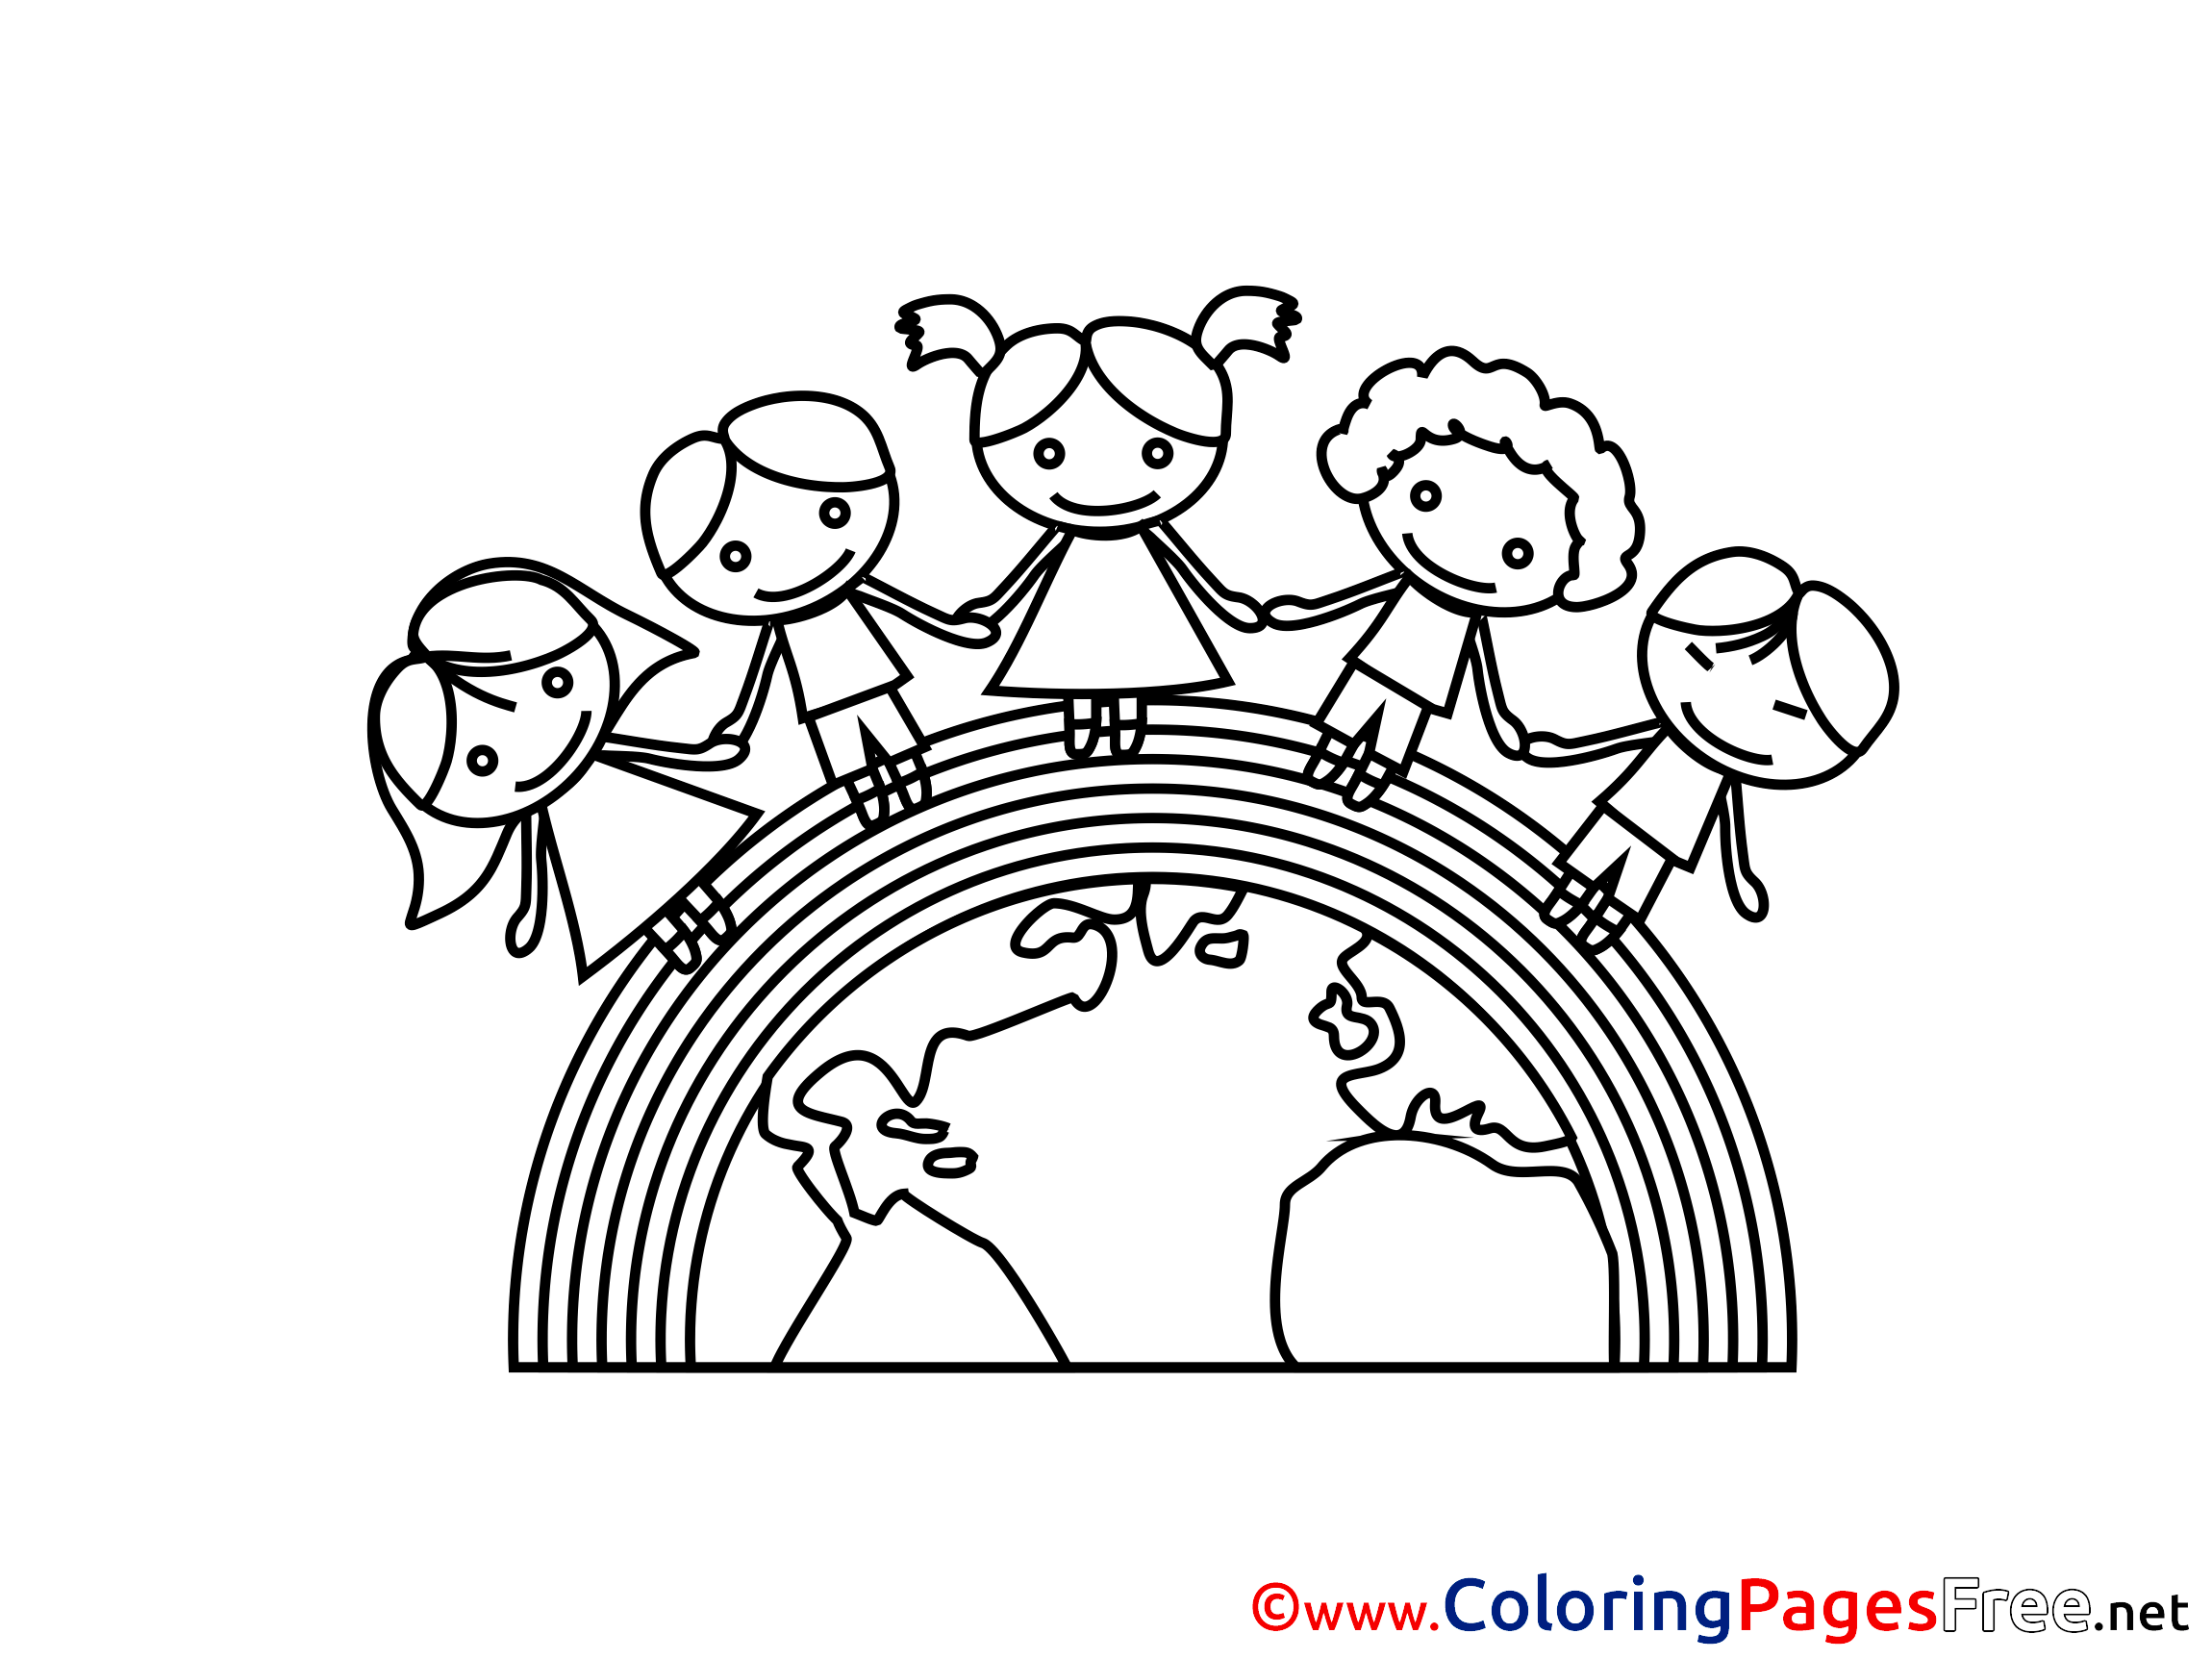 Rainbow Kids Earth Download Colouring Sheet Free